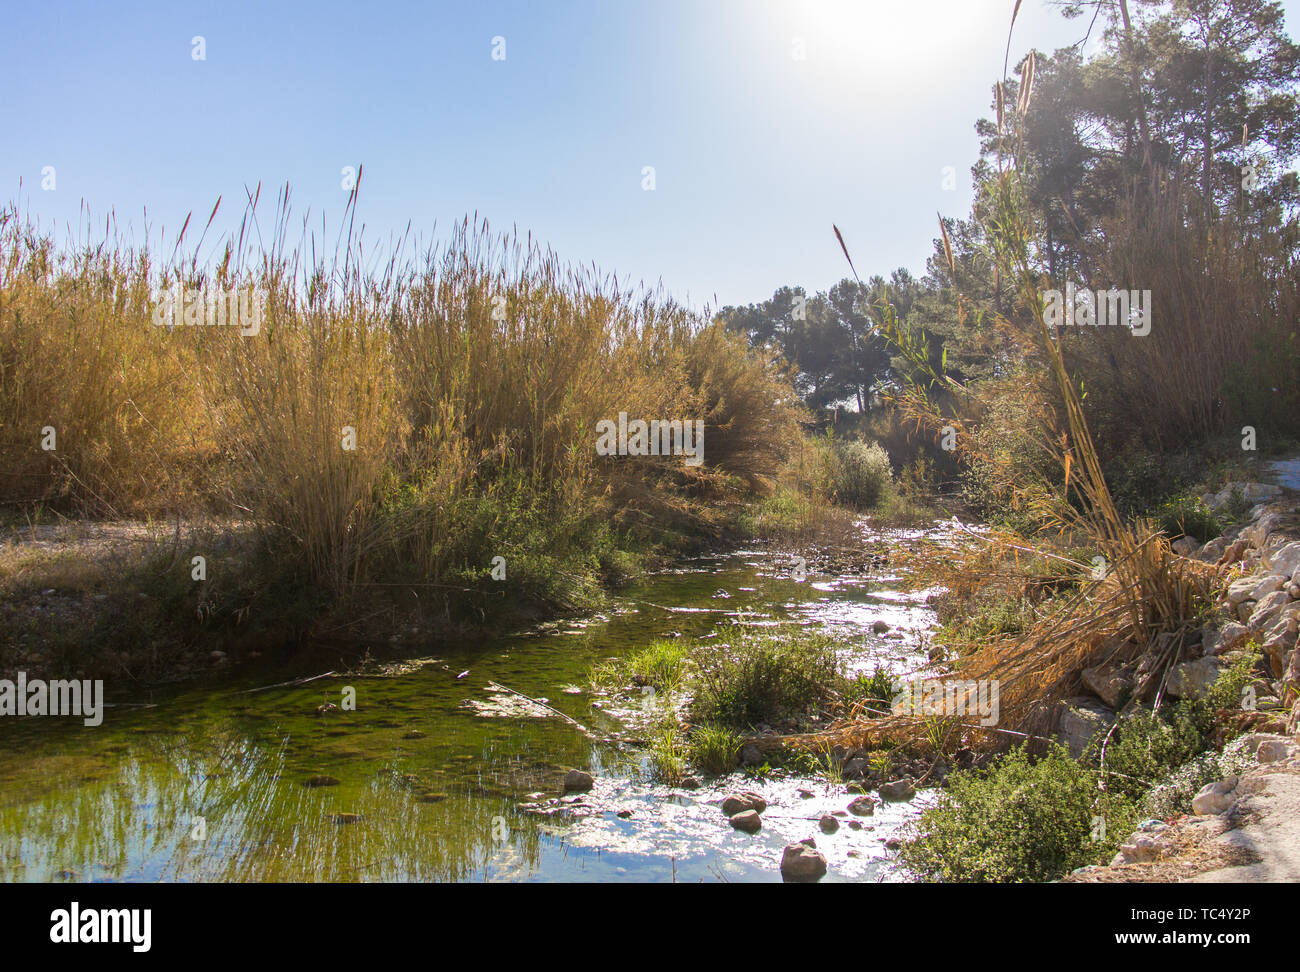 Stagnant water in a river in Alcalalí, Spain - Stock Image